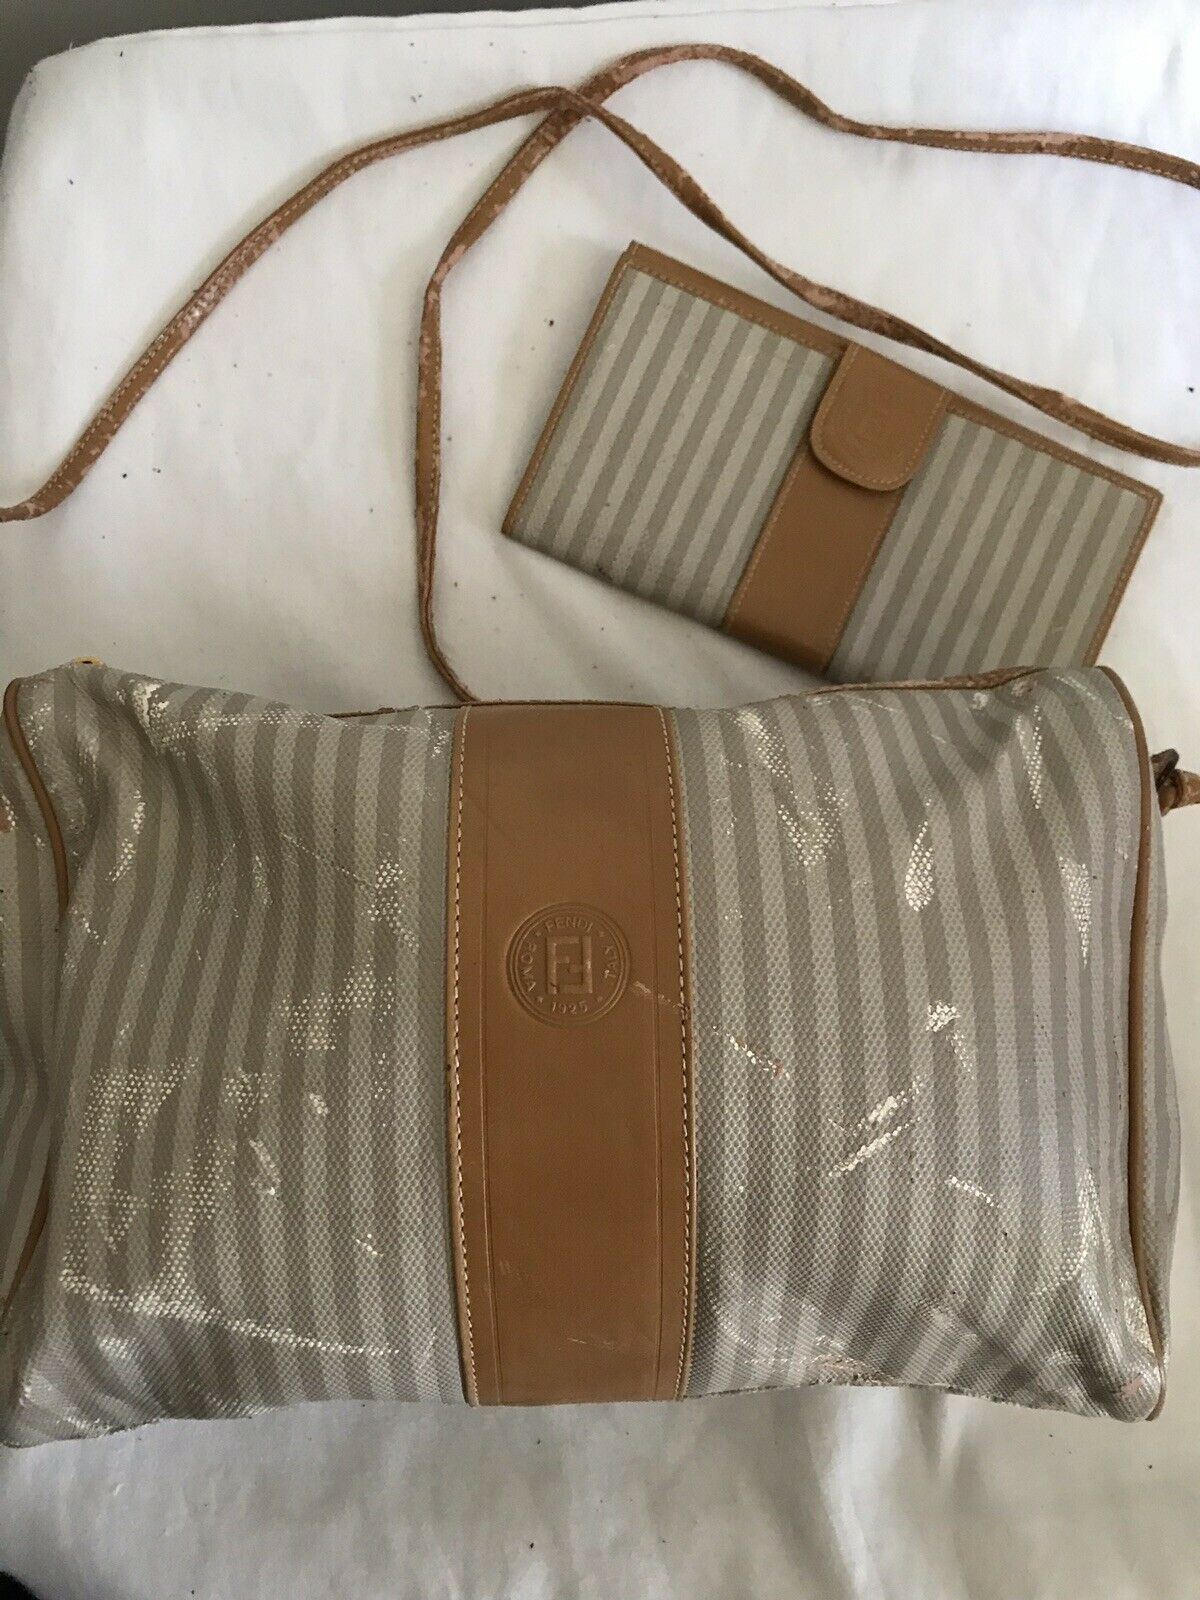 FENDI Vintage Grey/Beige Medium Leather Crossbody Bag With Matching Wallet